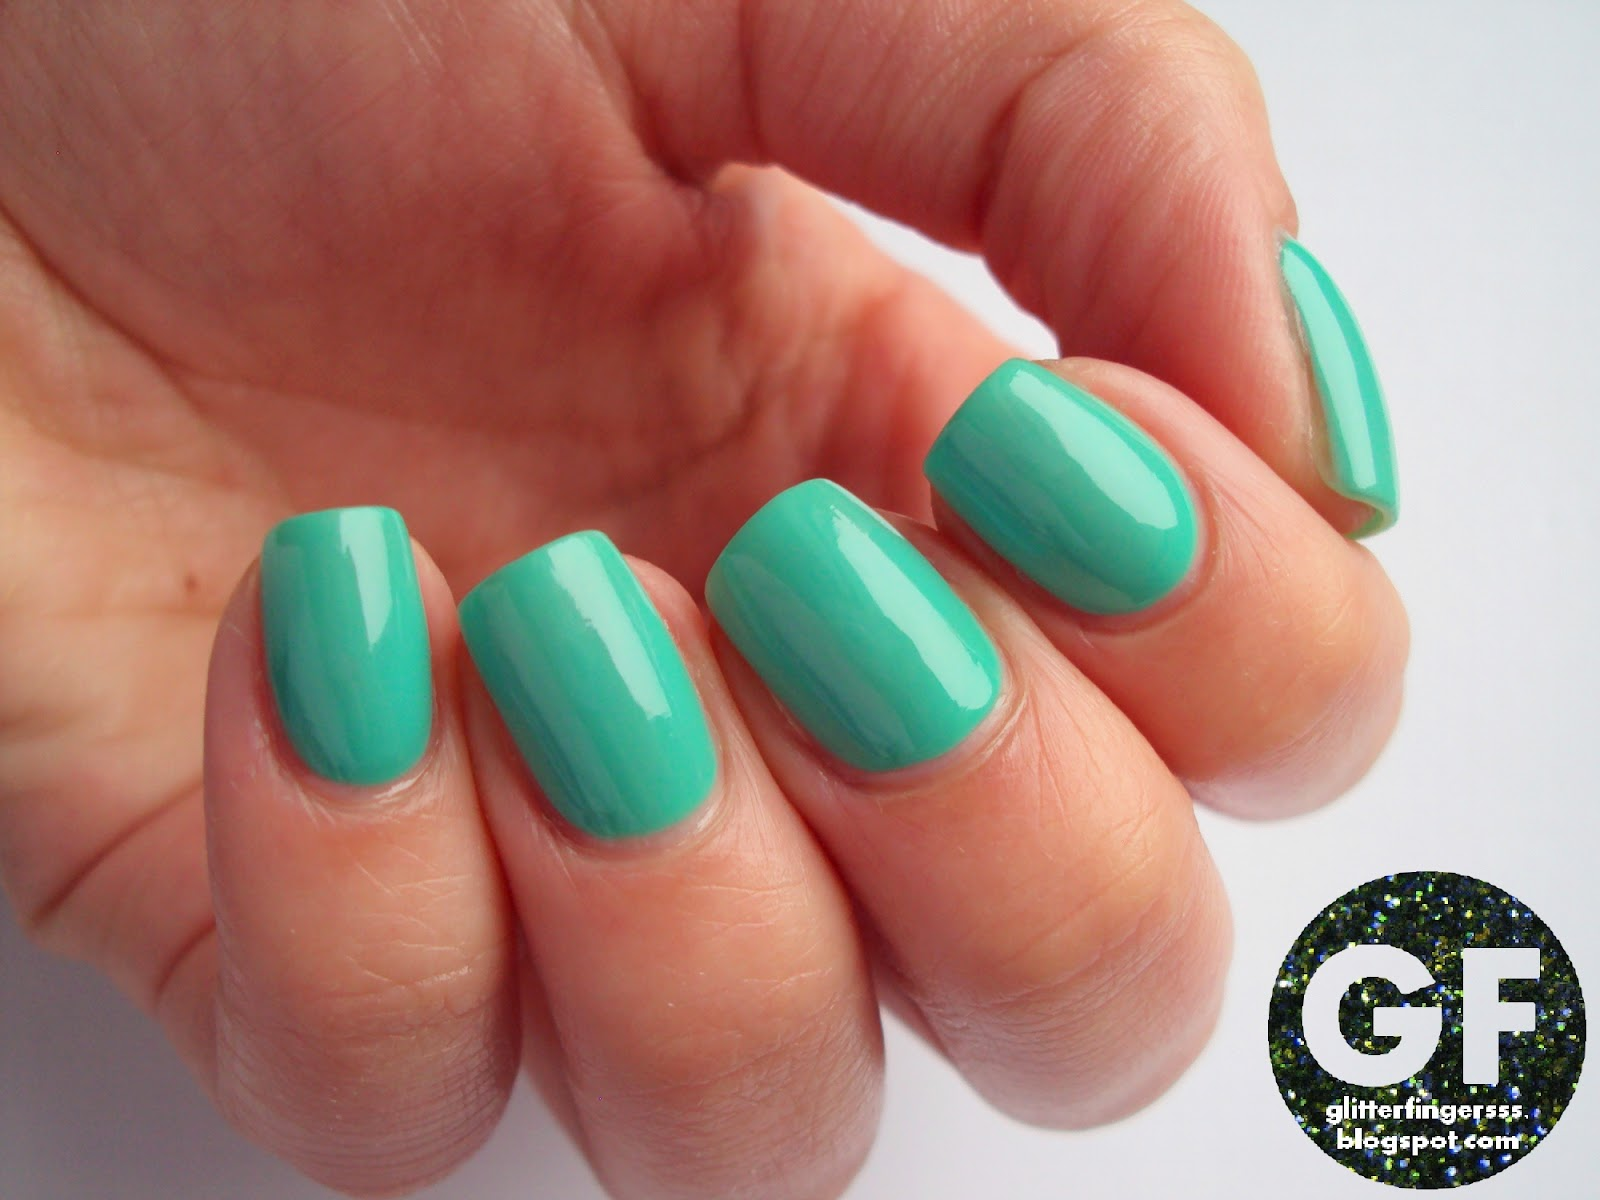 SWATCH | Favorite Rimmel nail polishes: Misty Jade, Sea Green ...